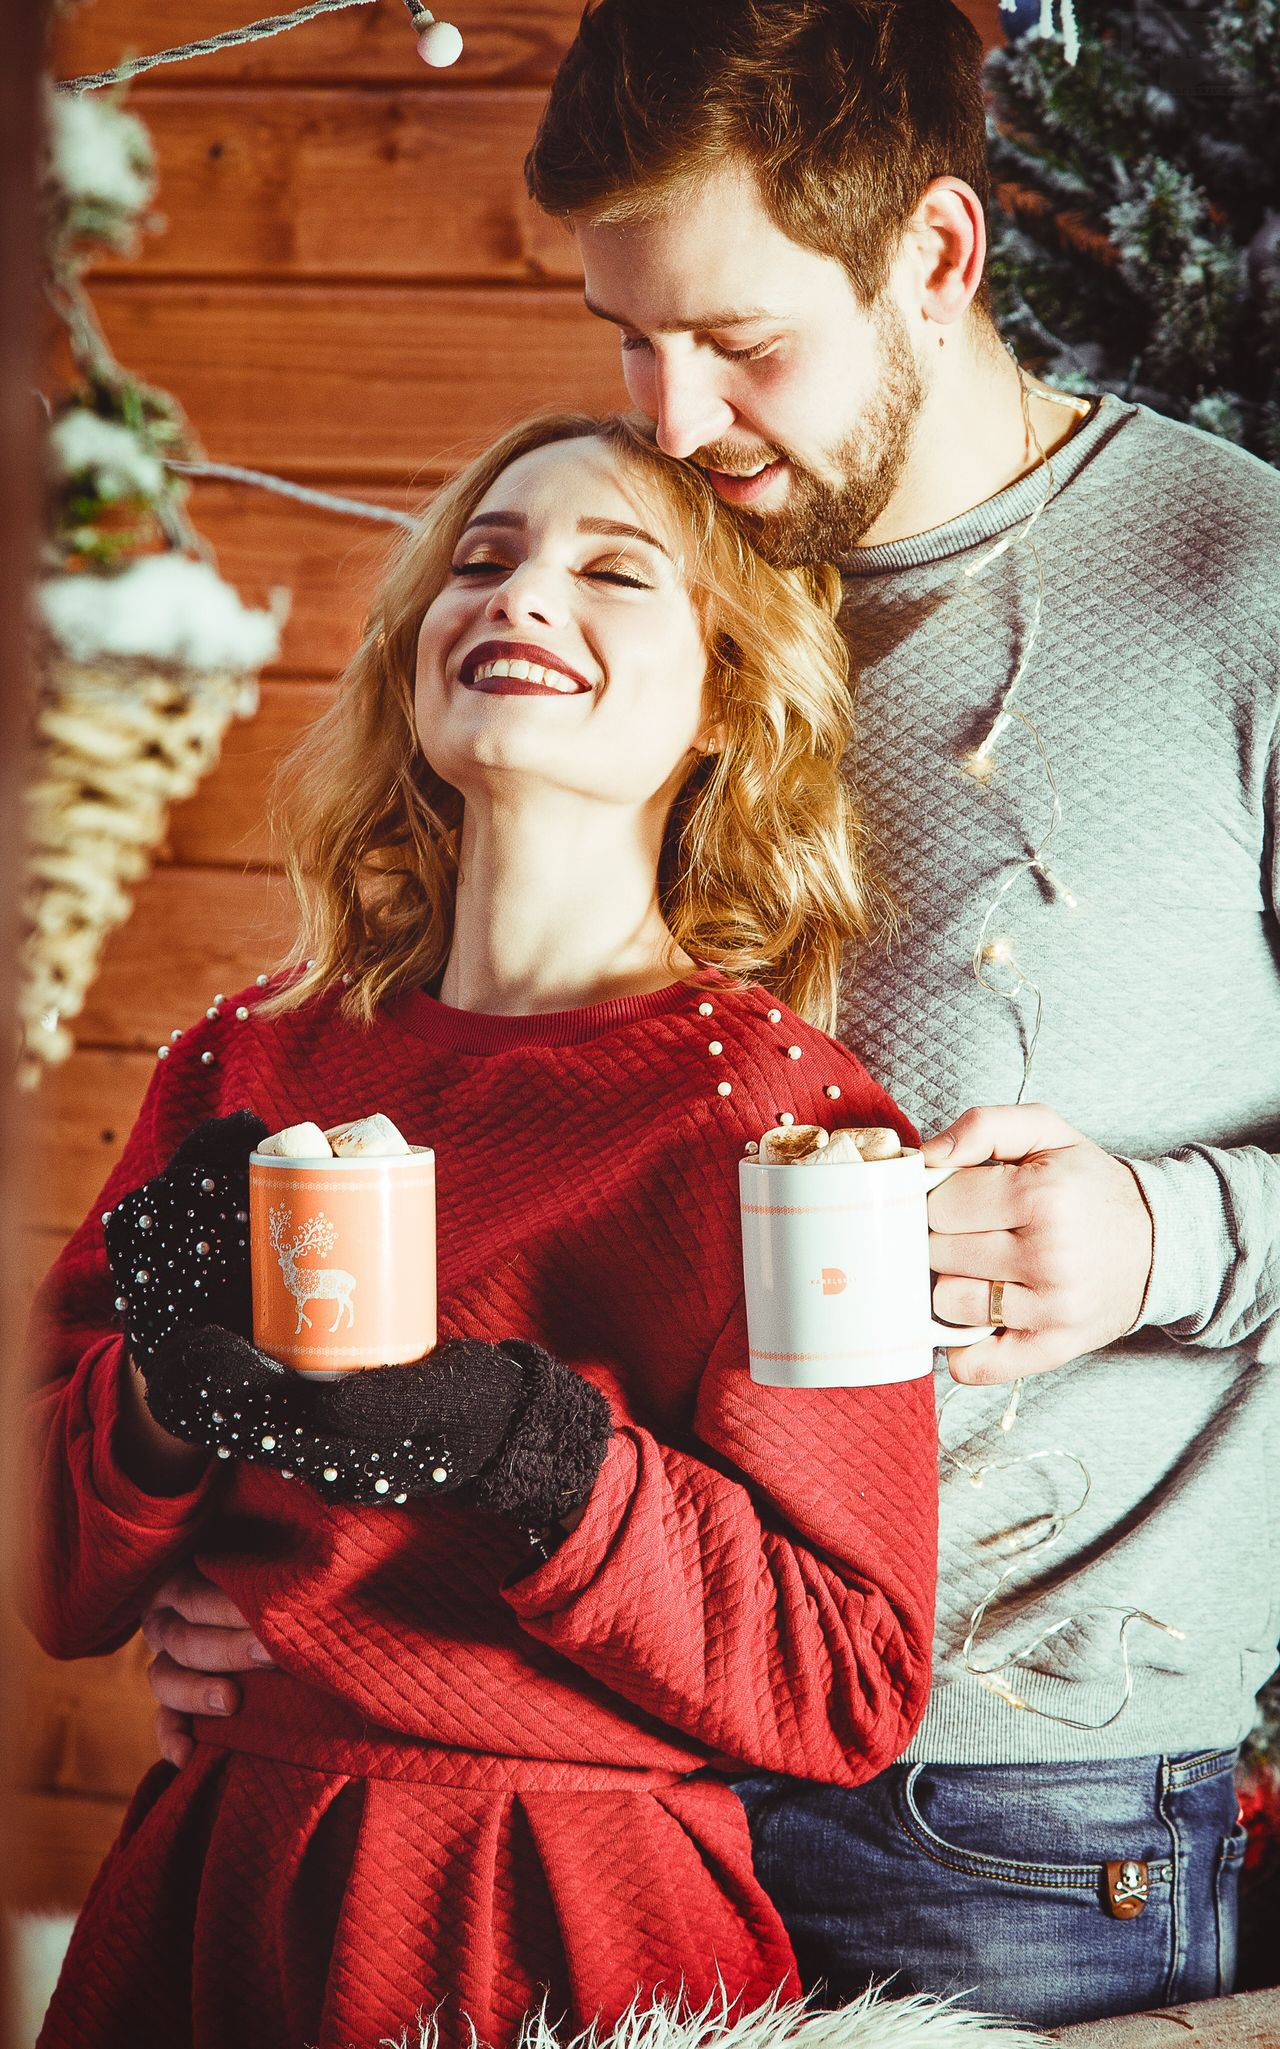 Coffee - Drink Coffee Cup Two People Winter Drink Cup Love Young Adult Christmas Happiness Tea - Hot Drink Smiling Young Women Relaxation Women Cheerful Drinking Enjoyment Adults Only Friendship